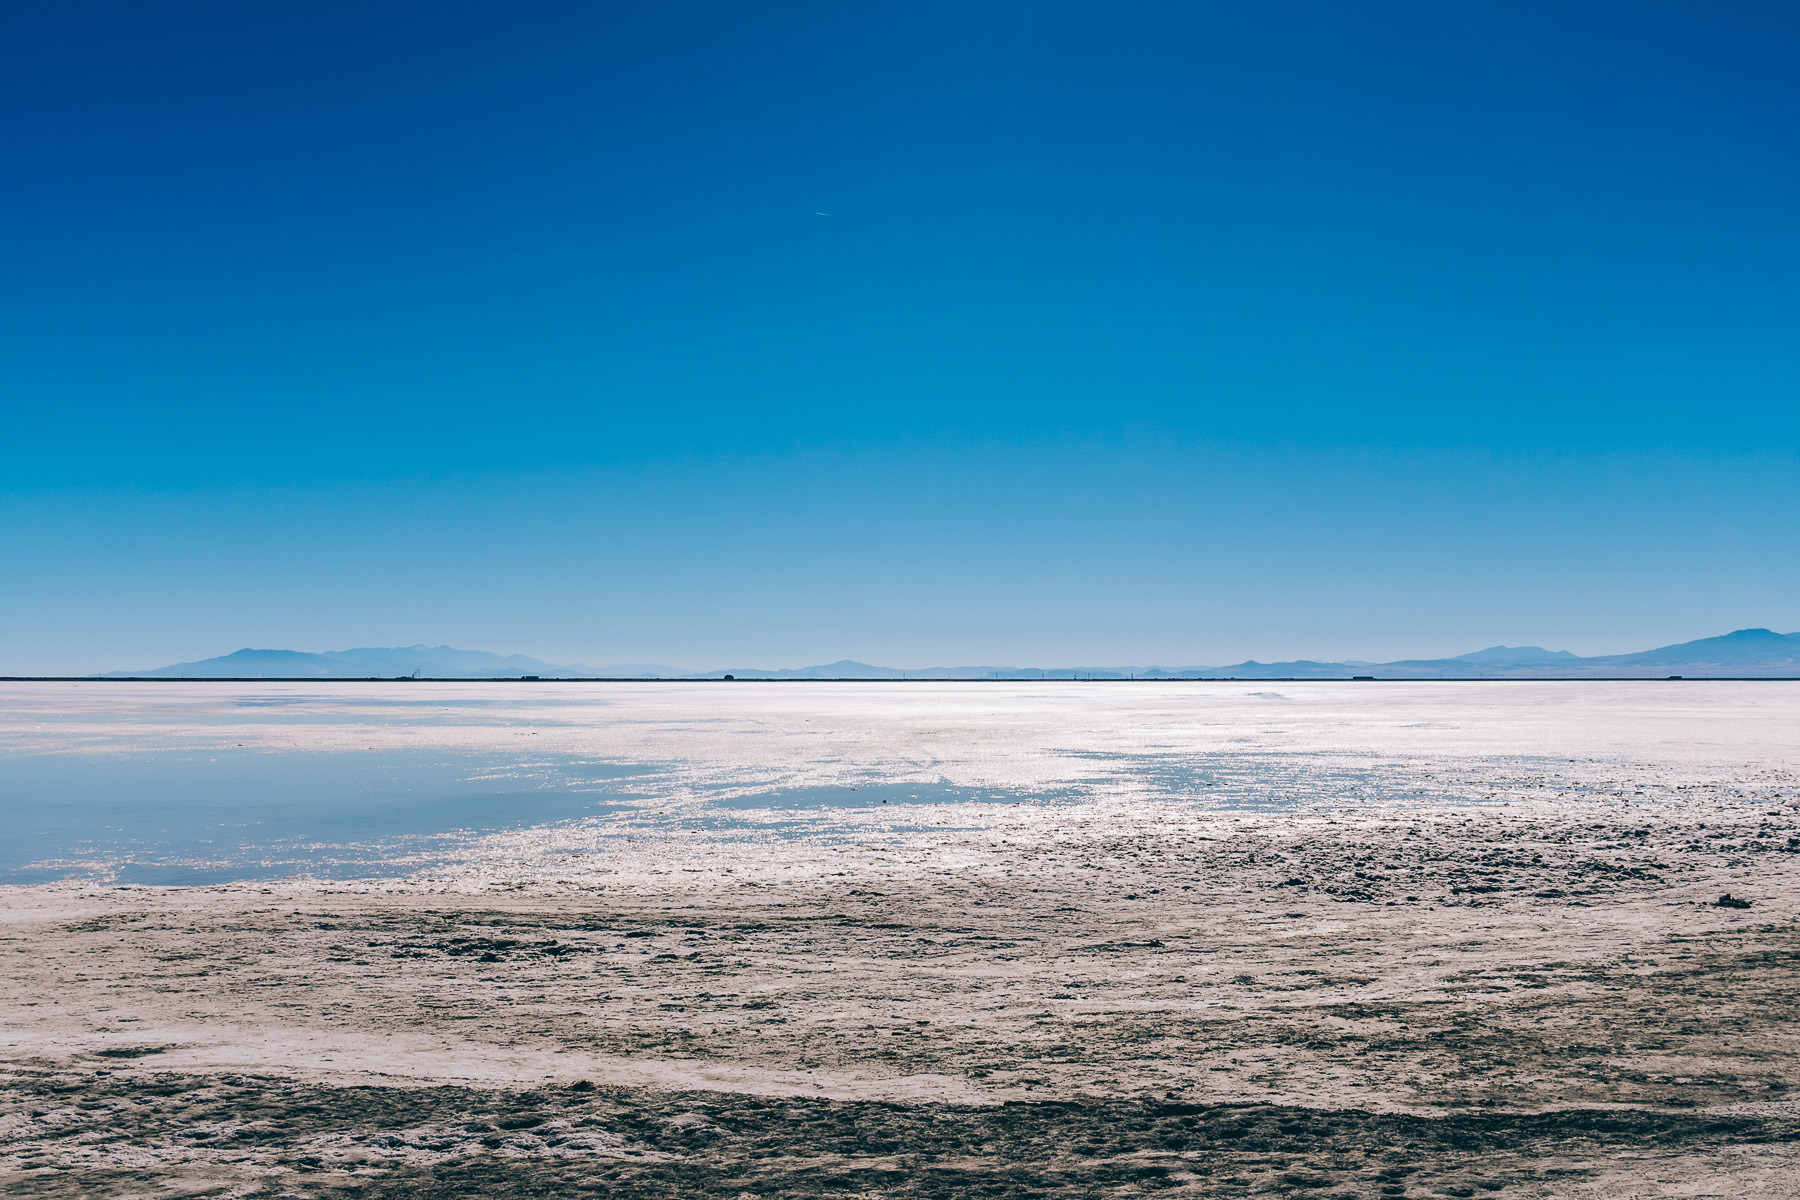 Utah's Bonneville Salt Flats stretch to the horizon as traffic transits Interstate 80 in the distance.